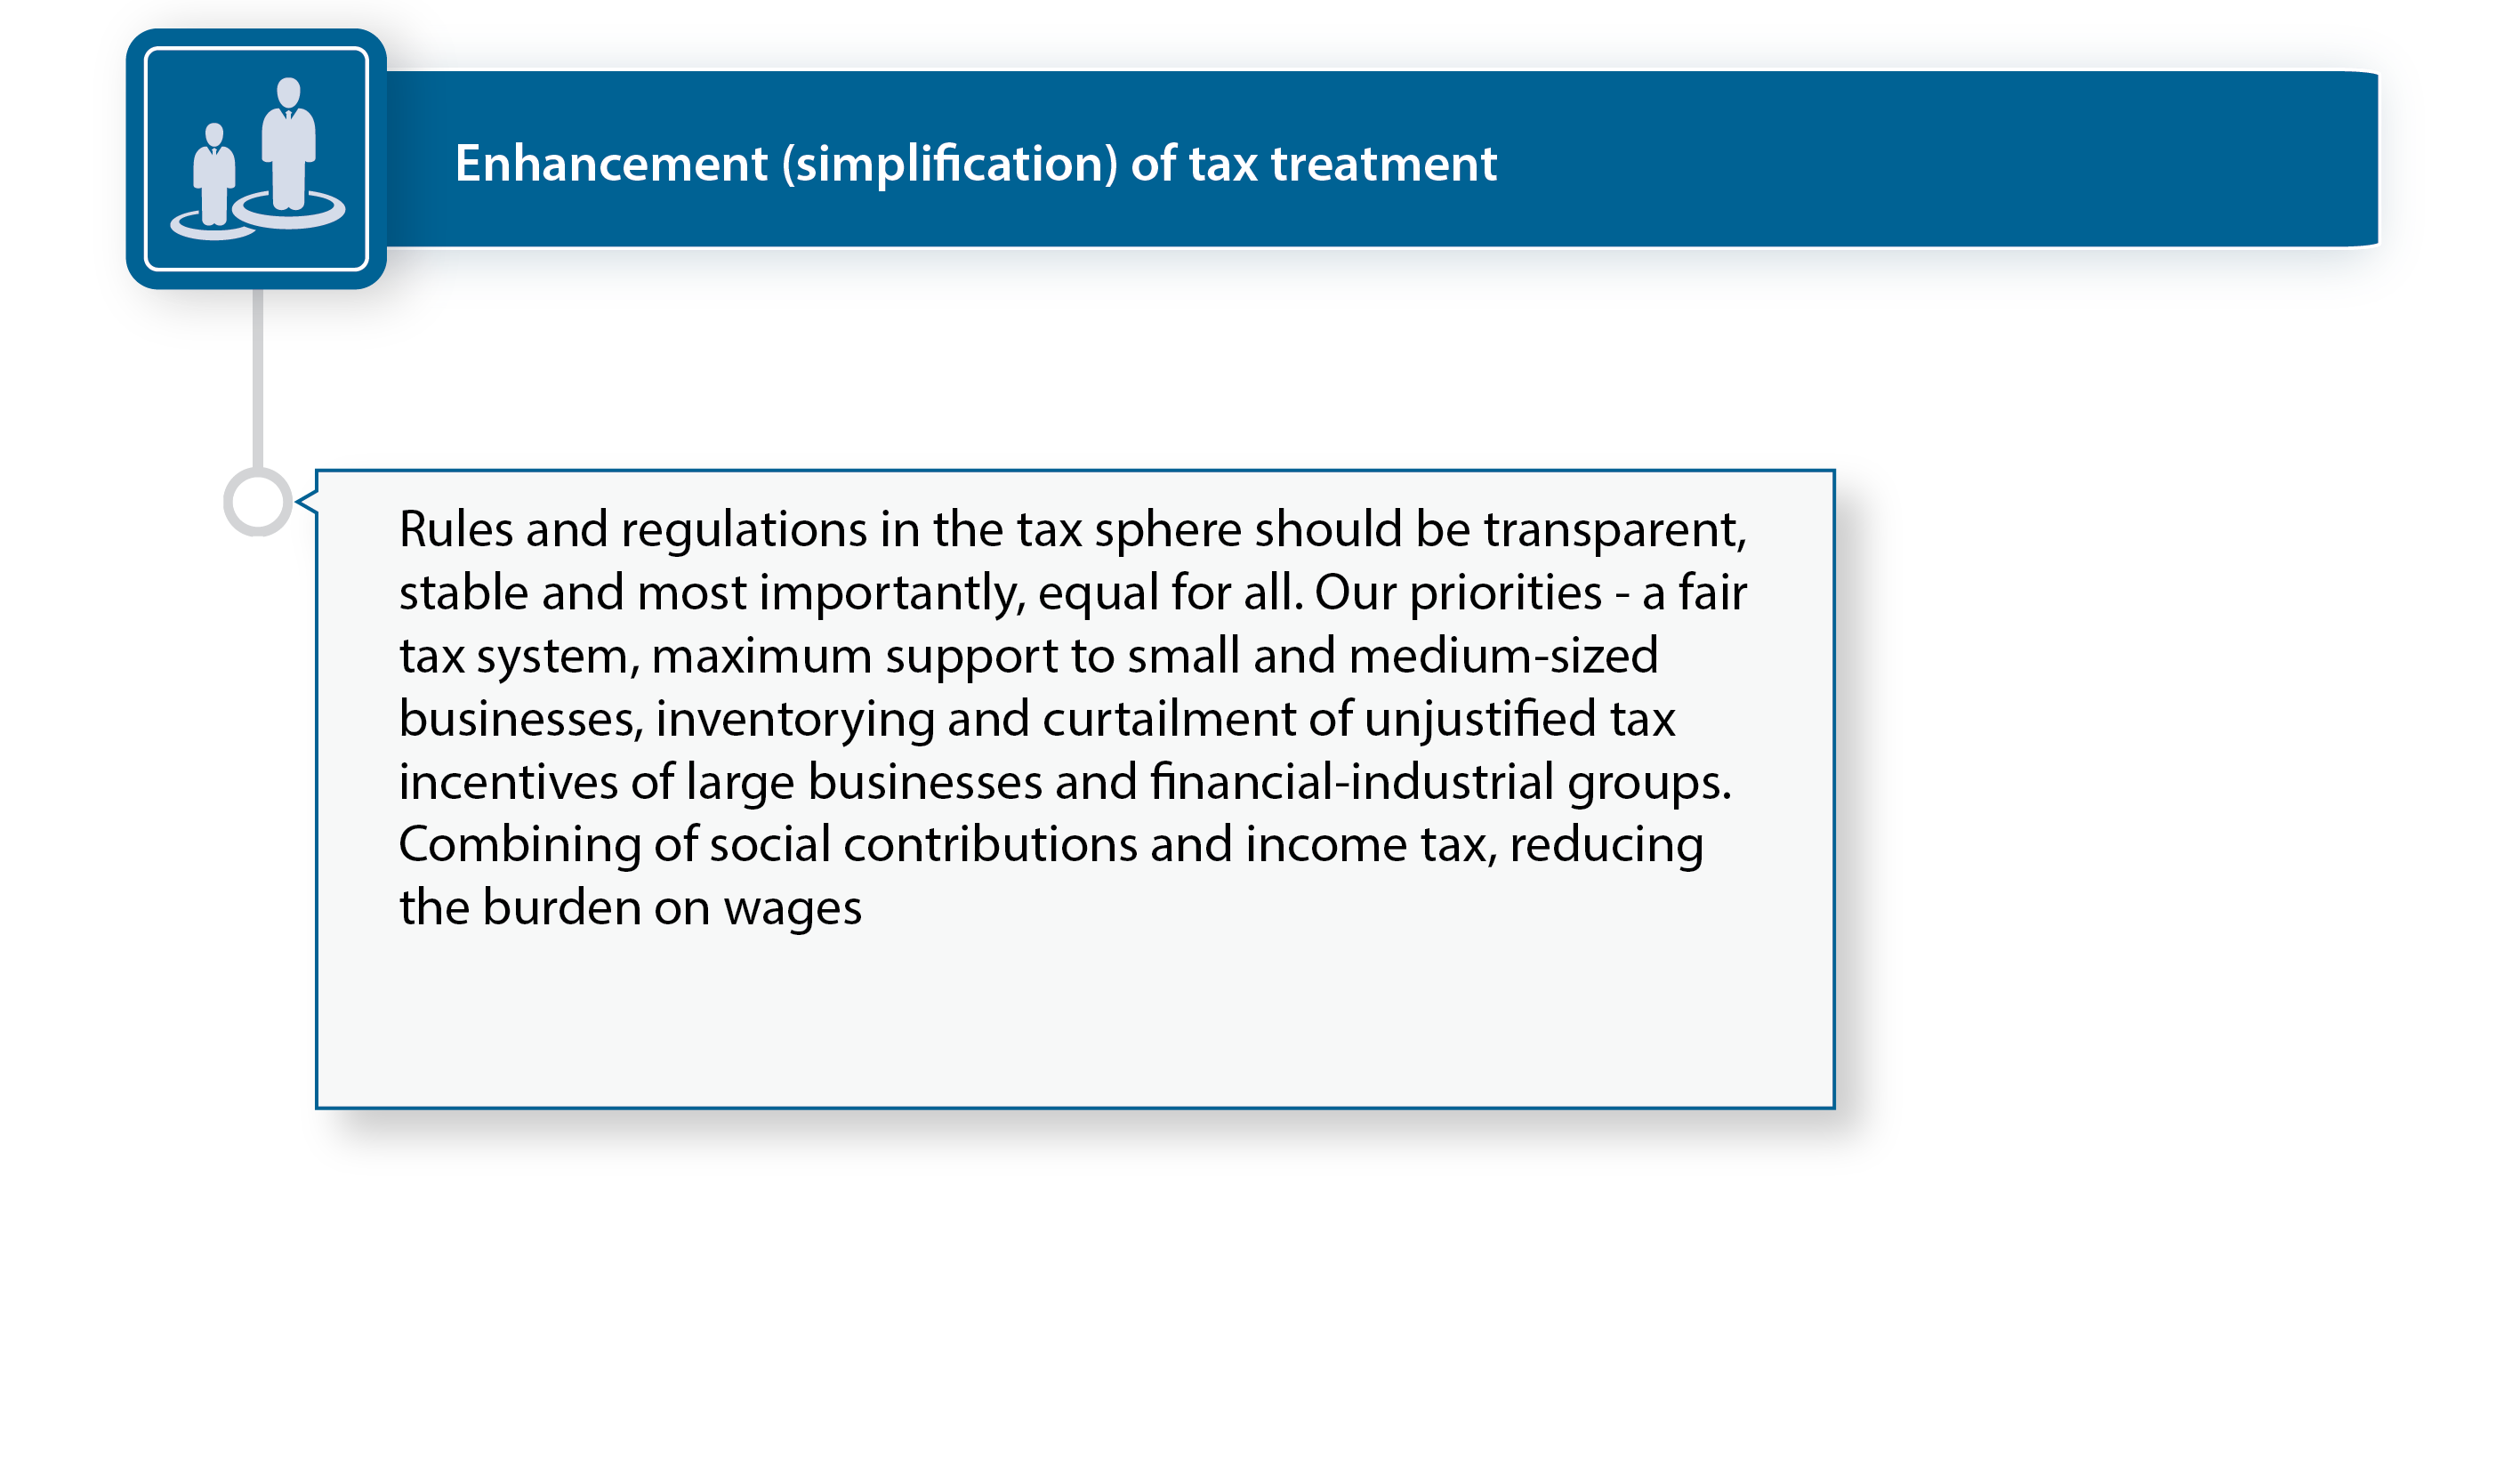 Enhancement (simplification) of tax treatment